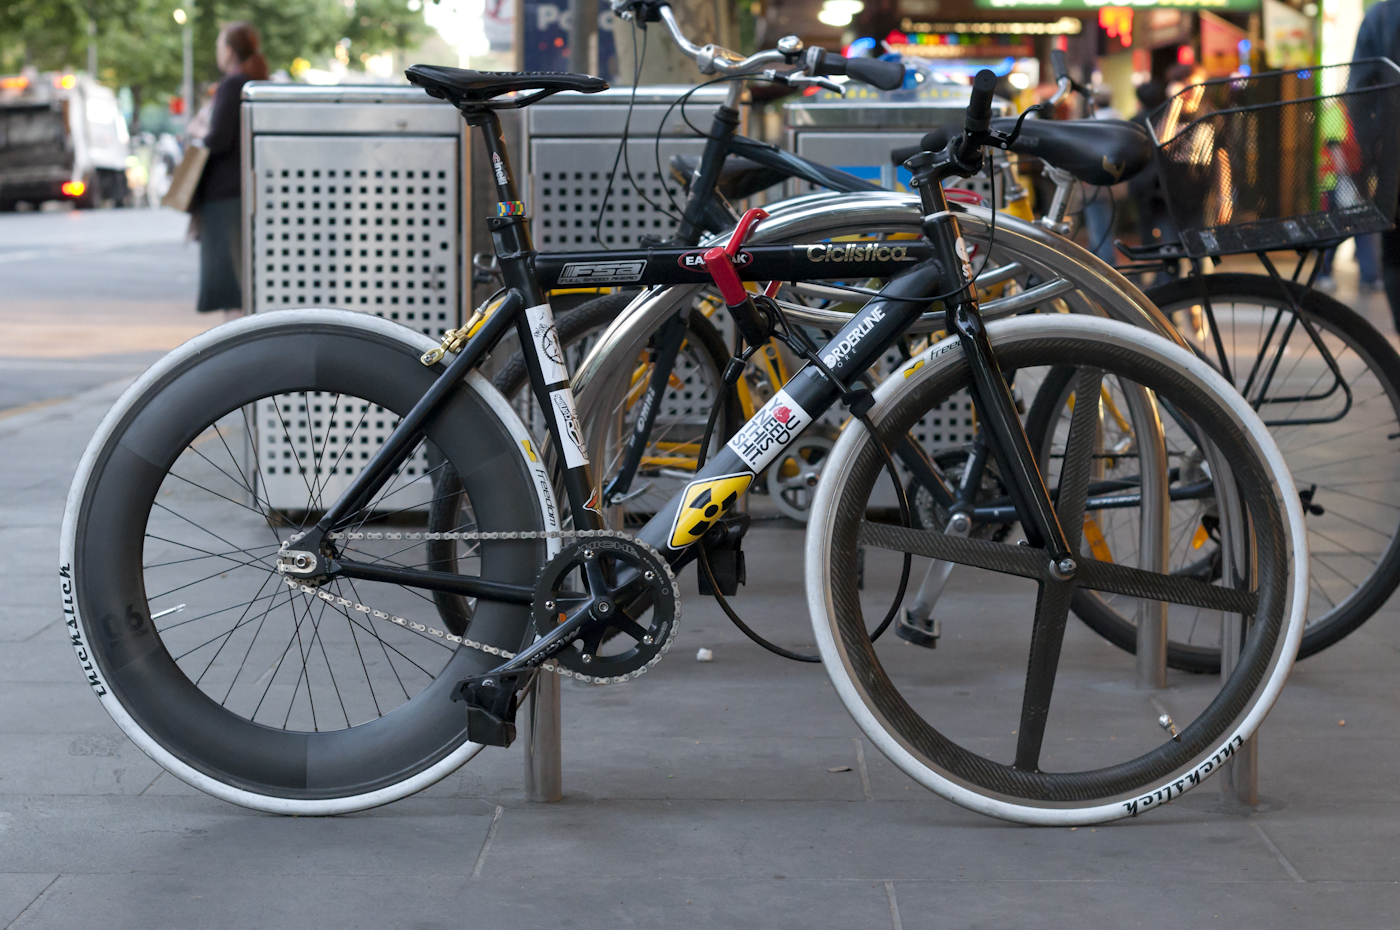 The Biketorialist: Strada Pro Model, Fixed Speed, Swanston St, Melbourne